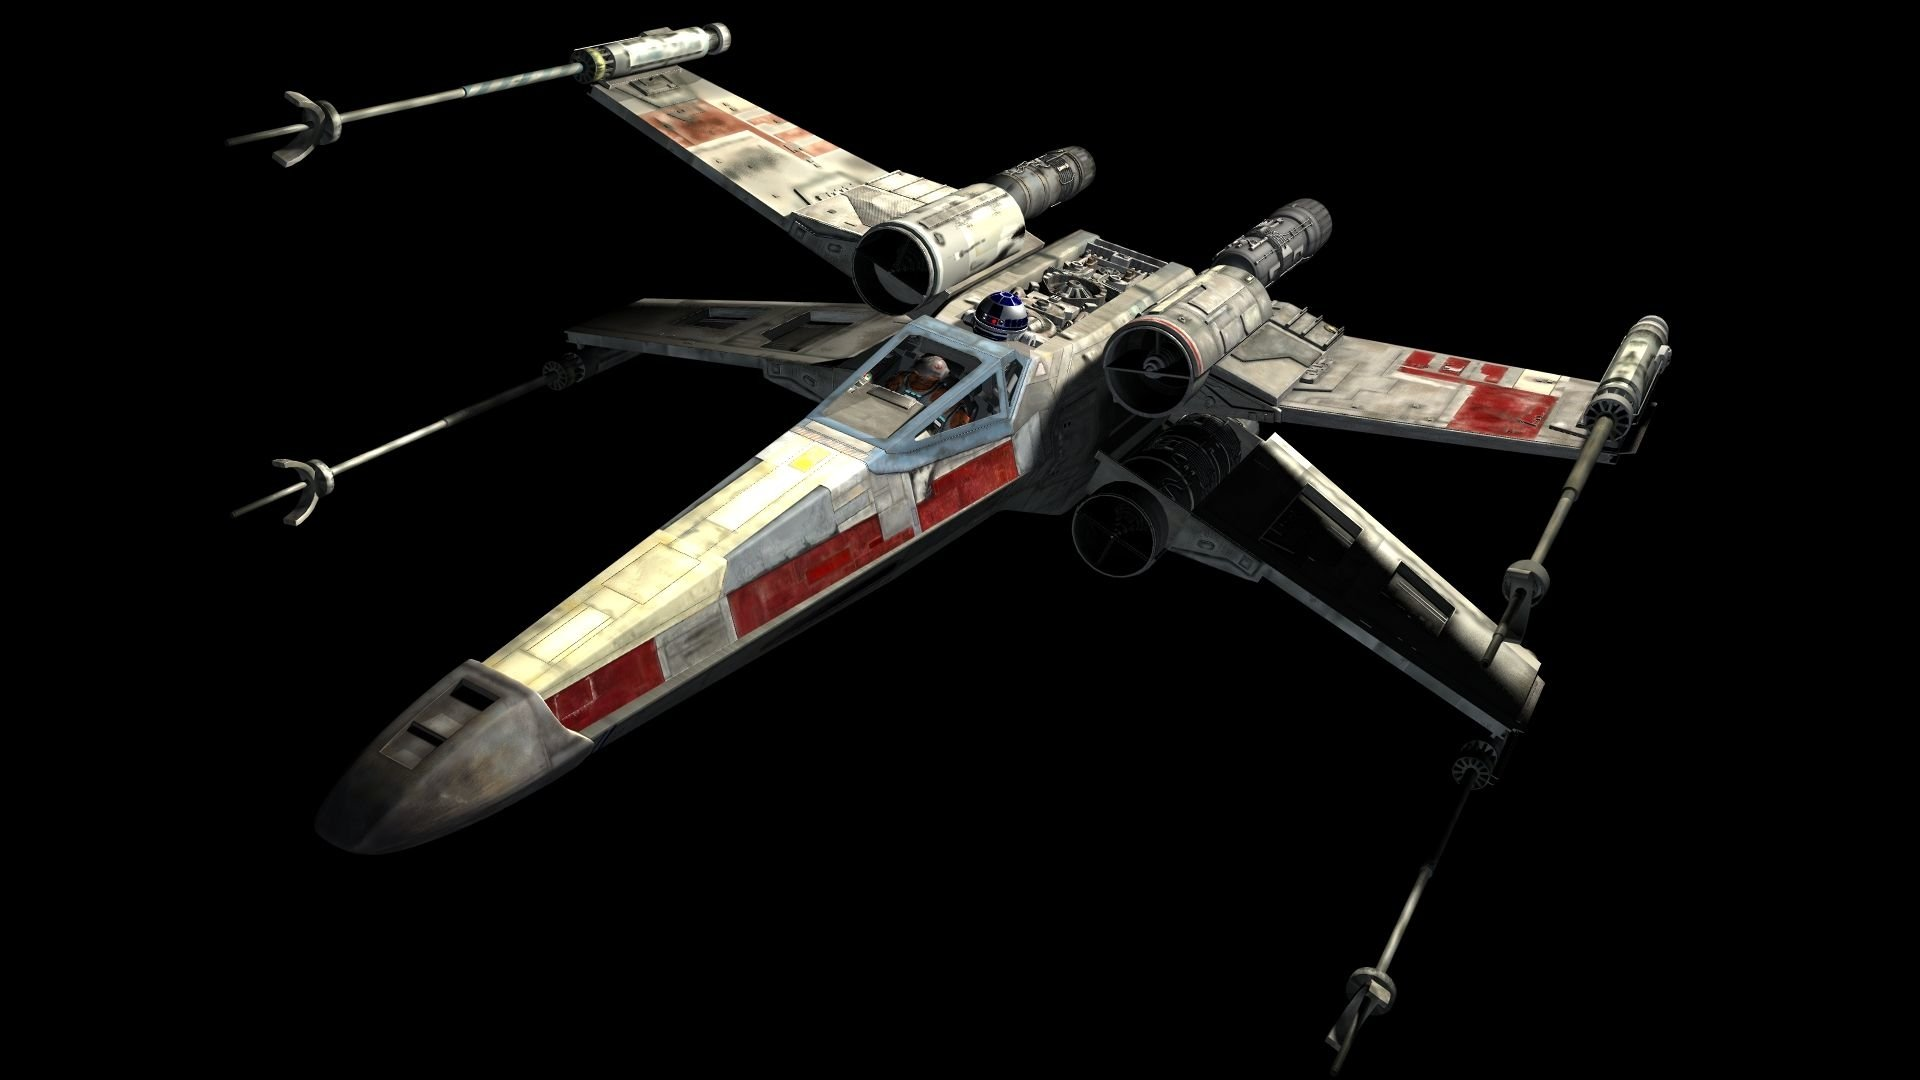 2 Star Wars Rogue Squadron Ii Rogue Leader Hd Wallpapers Background Images Wallpaper Abyss